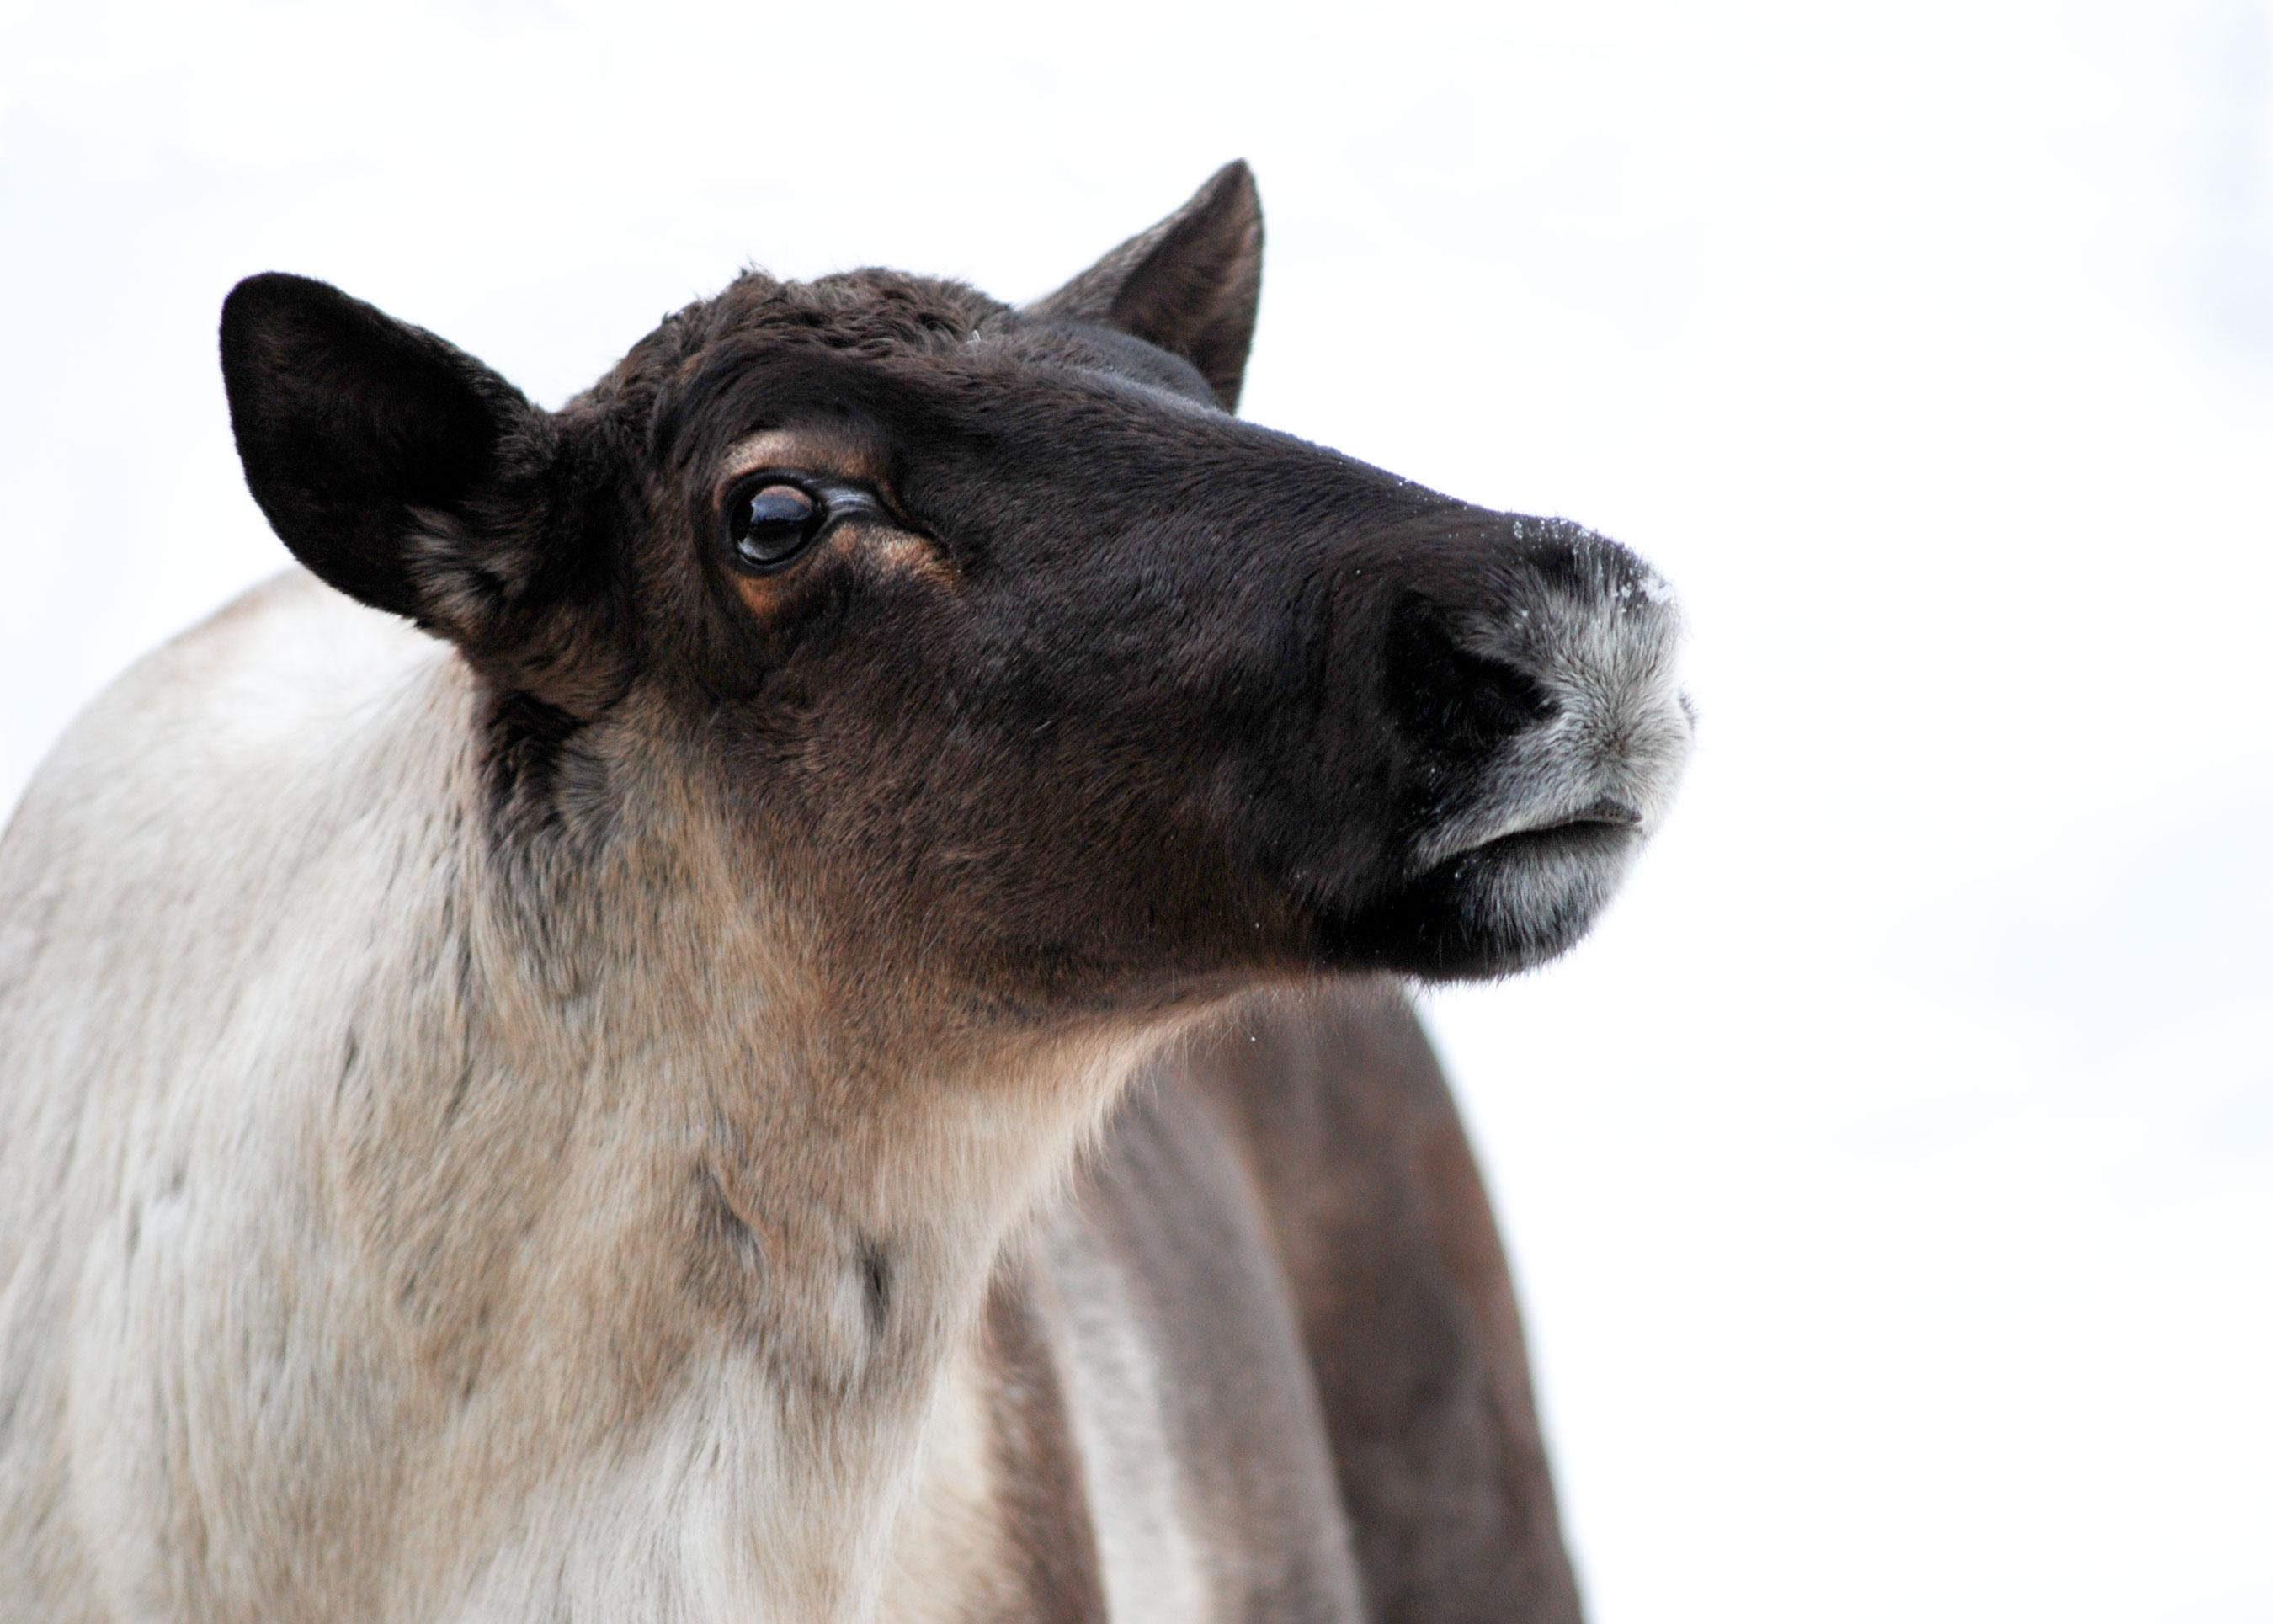 A small town's economy. Endangered caribou. Which do we protect?